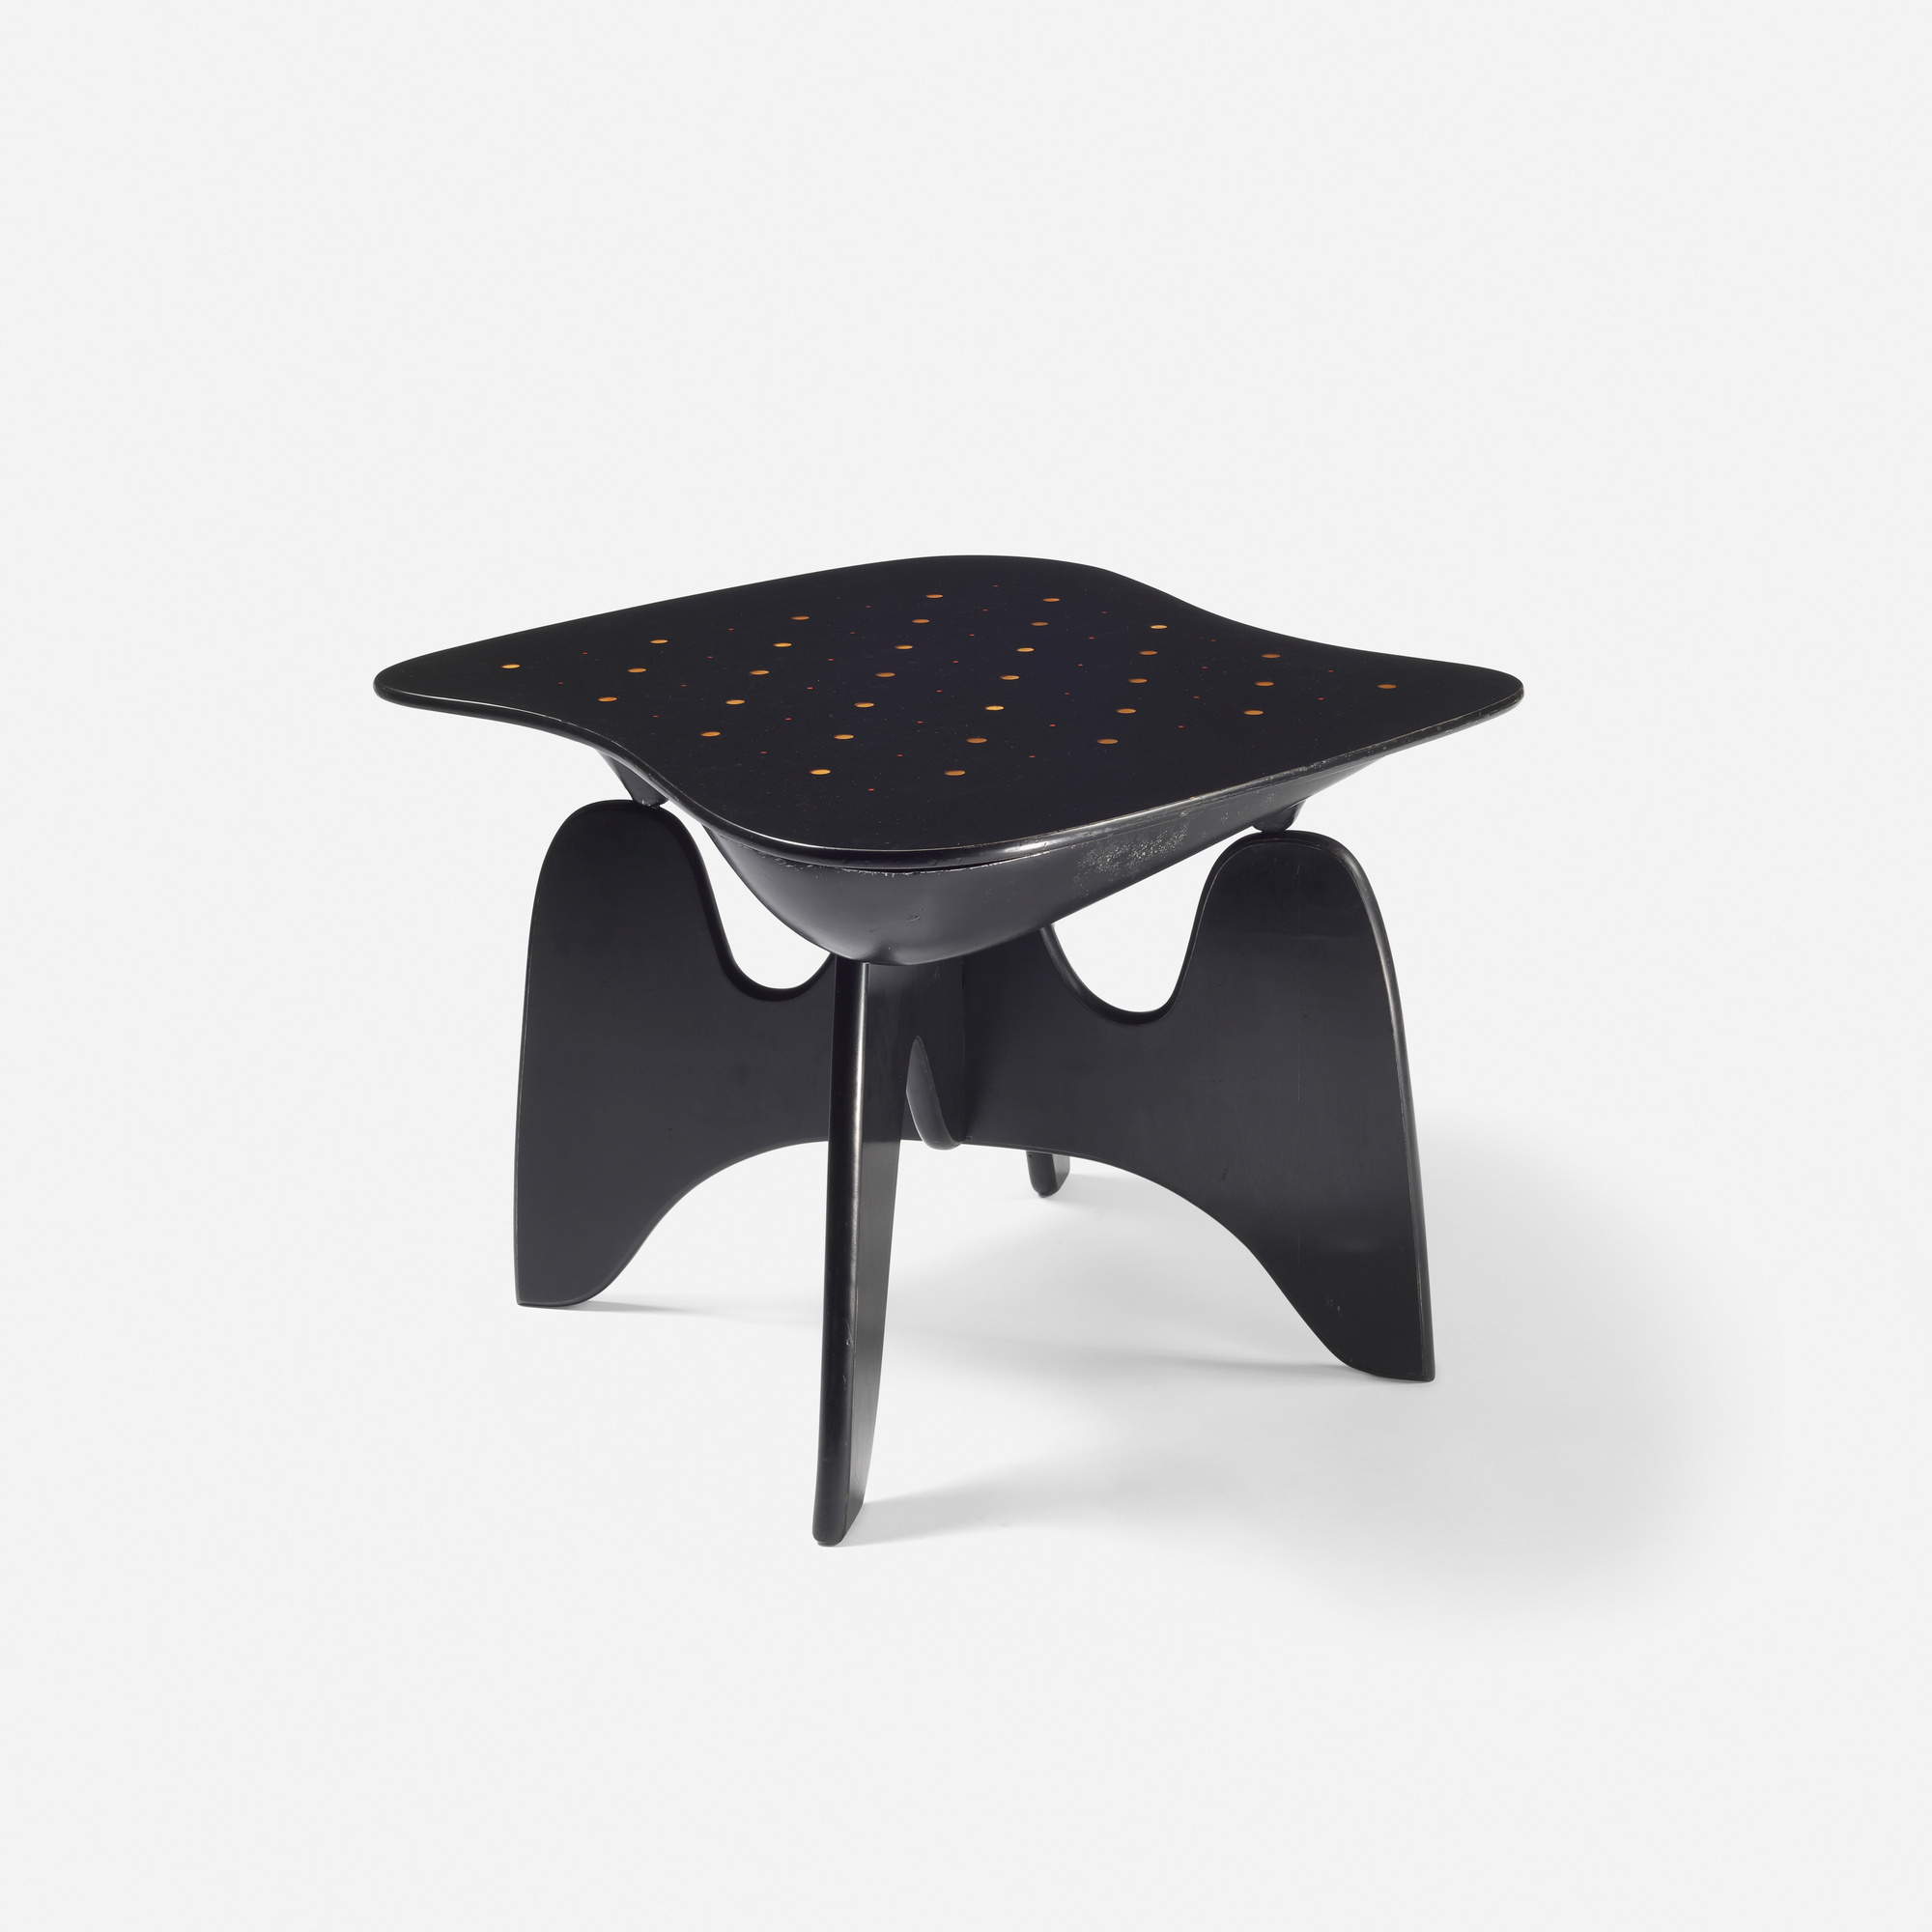 16: Isamu Noguchi / Rare and Important Chess table, model IN-61 ...